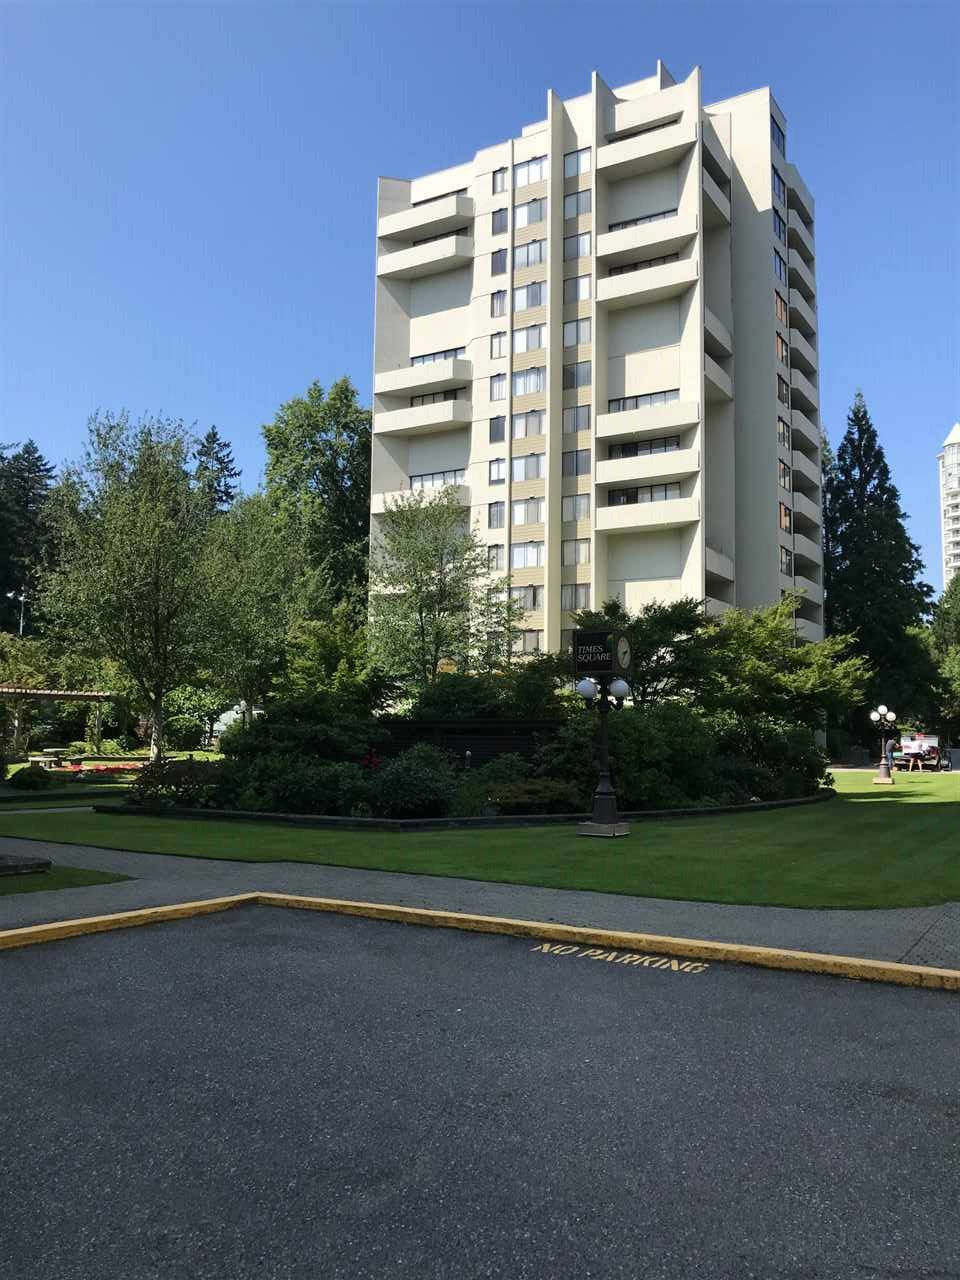 For Sale: 204 - 4200 Mayberry Street, Burnaby, BC | 1 Bed, 1 Bath Condo for $418000.